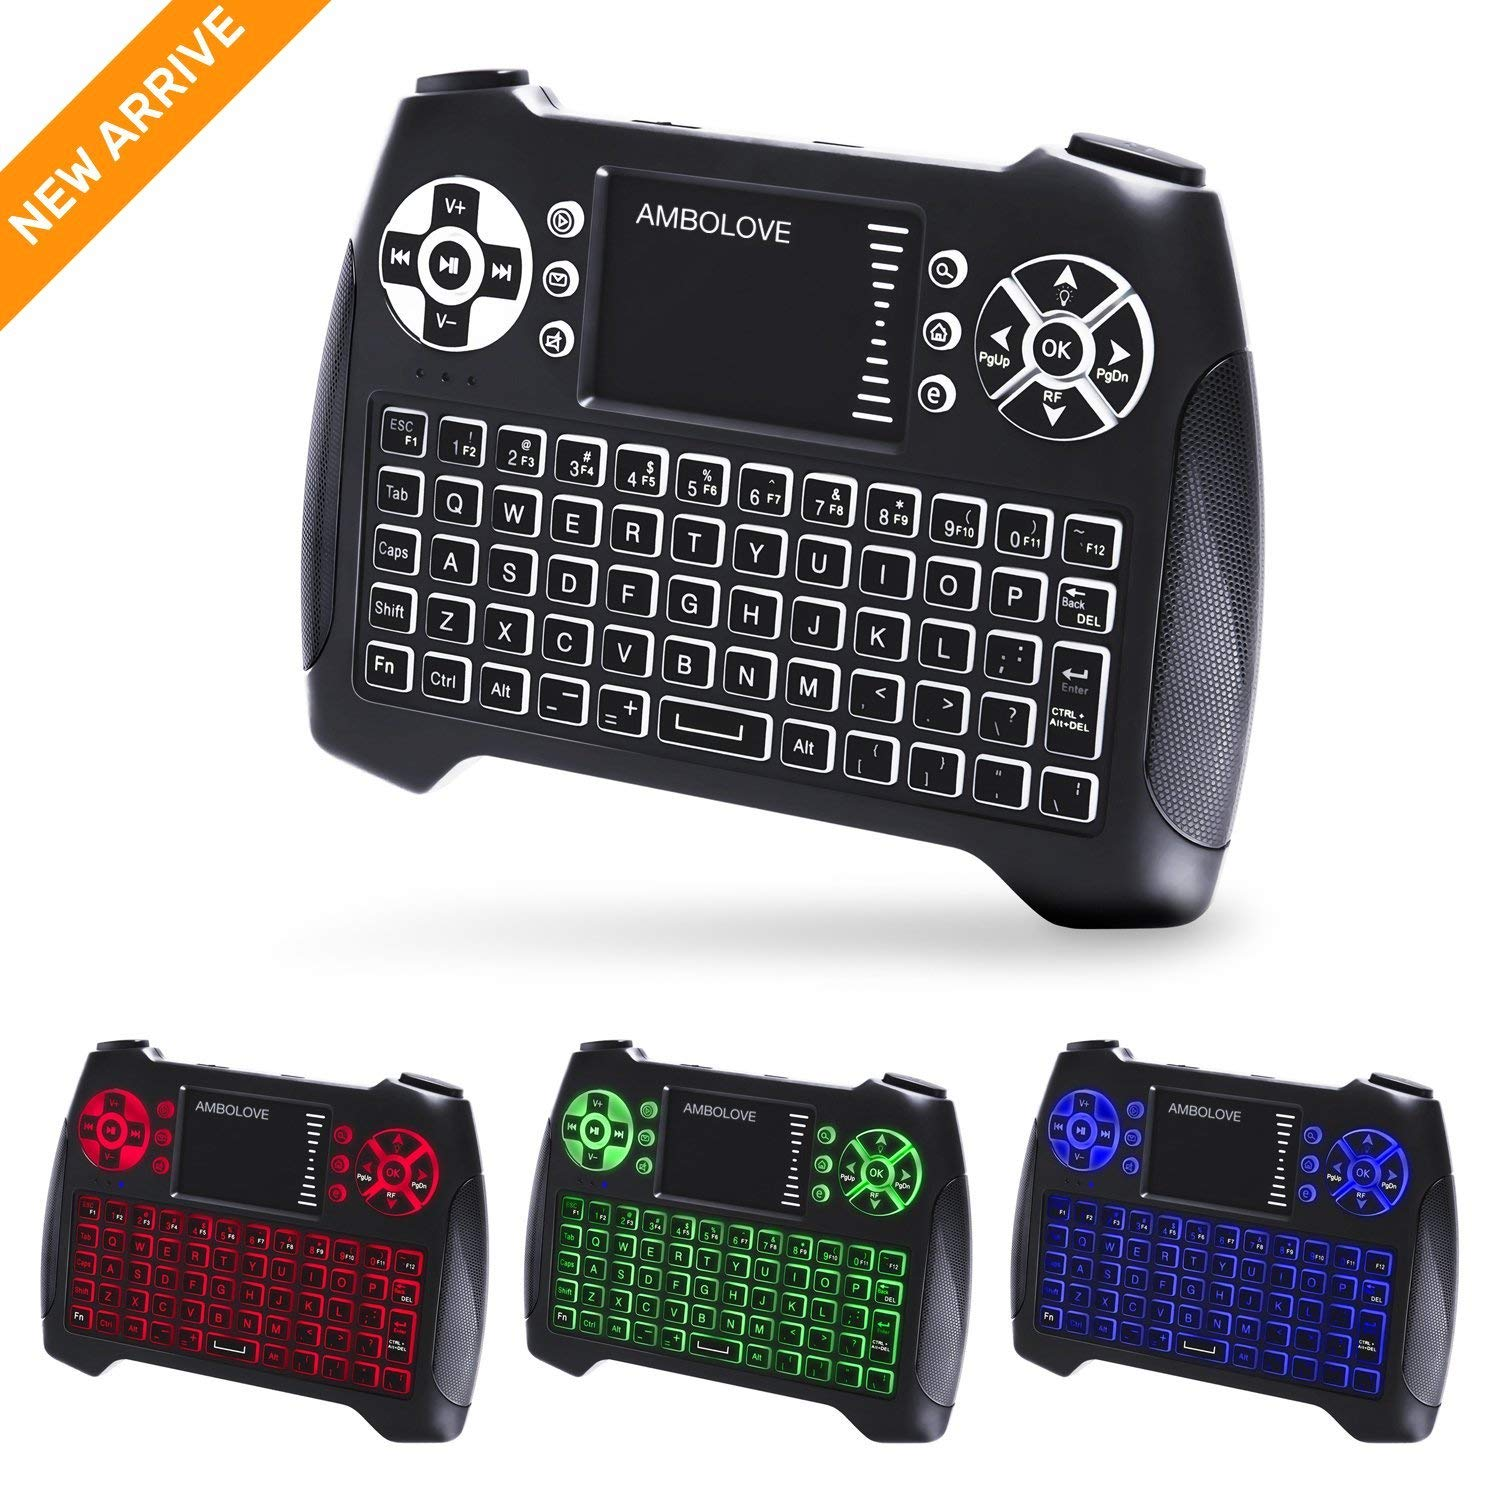 (Updated 2018, 3-Color RGB) Backlit Wireless Mini Keyboard with Touchpad Mouse and Multimedia Keys, 2.4Ghz USB Rechargable Handheld Remote Control Keyboard for PC, HTPC, X-BOX, Android TV Box,Smart TV by AMBOLOVE